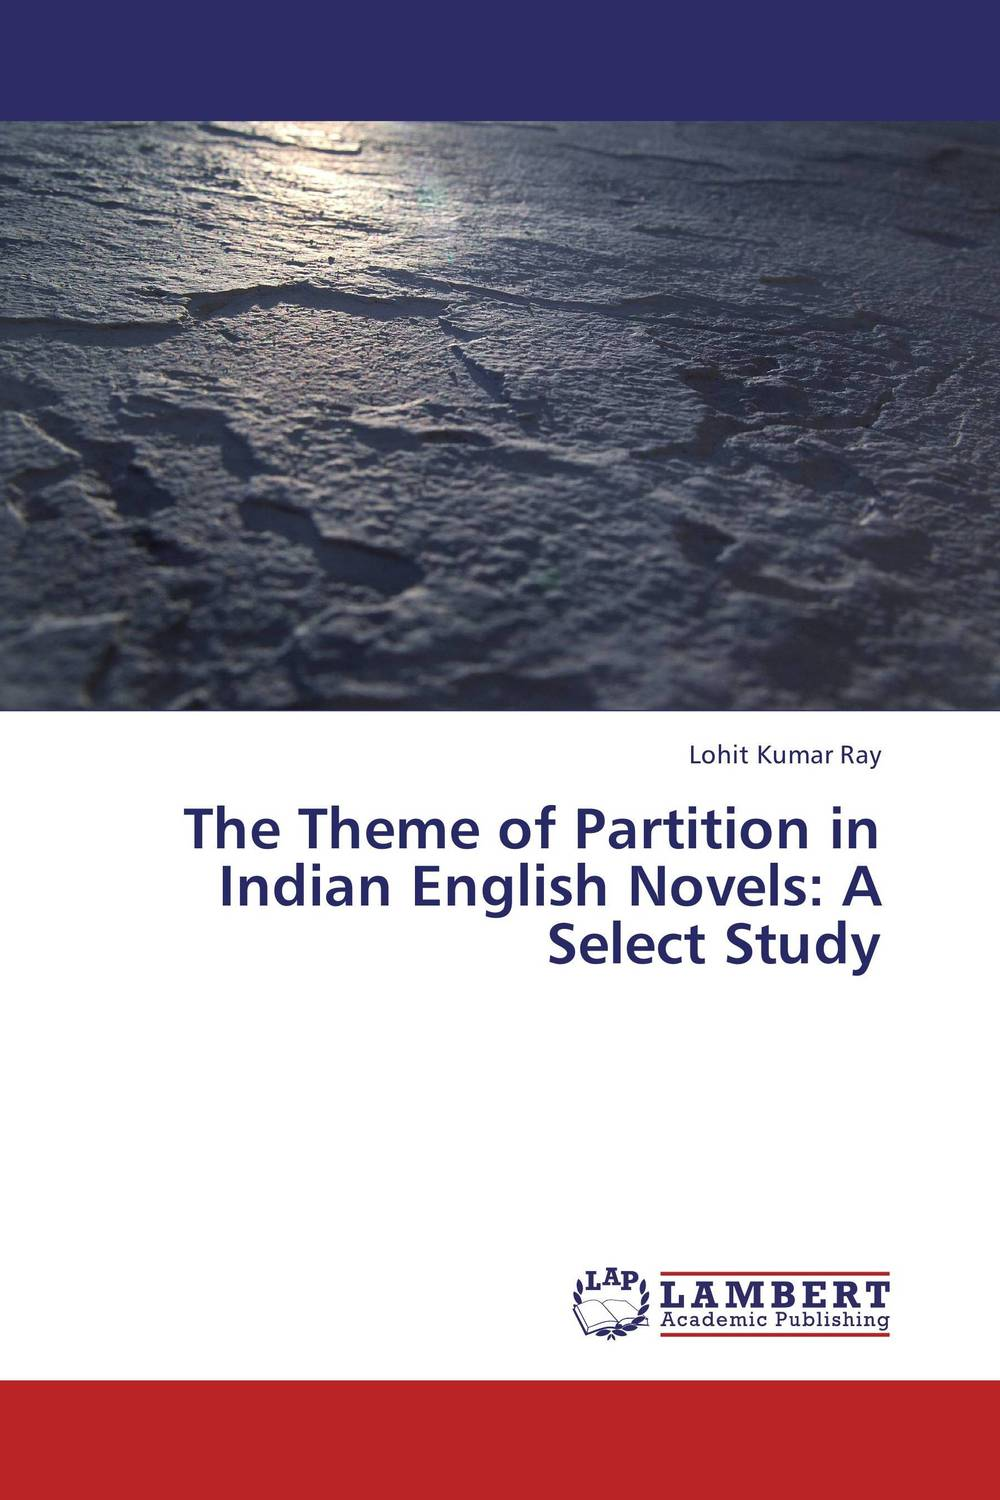 The Theme of Partition in Indian English Novels: A Select Study самокат 1toy винни пух т59546